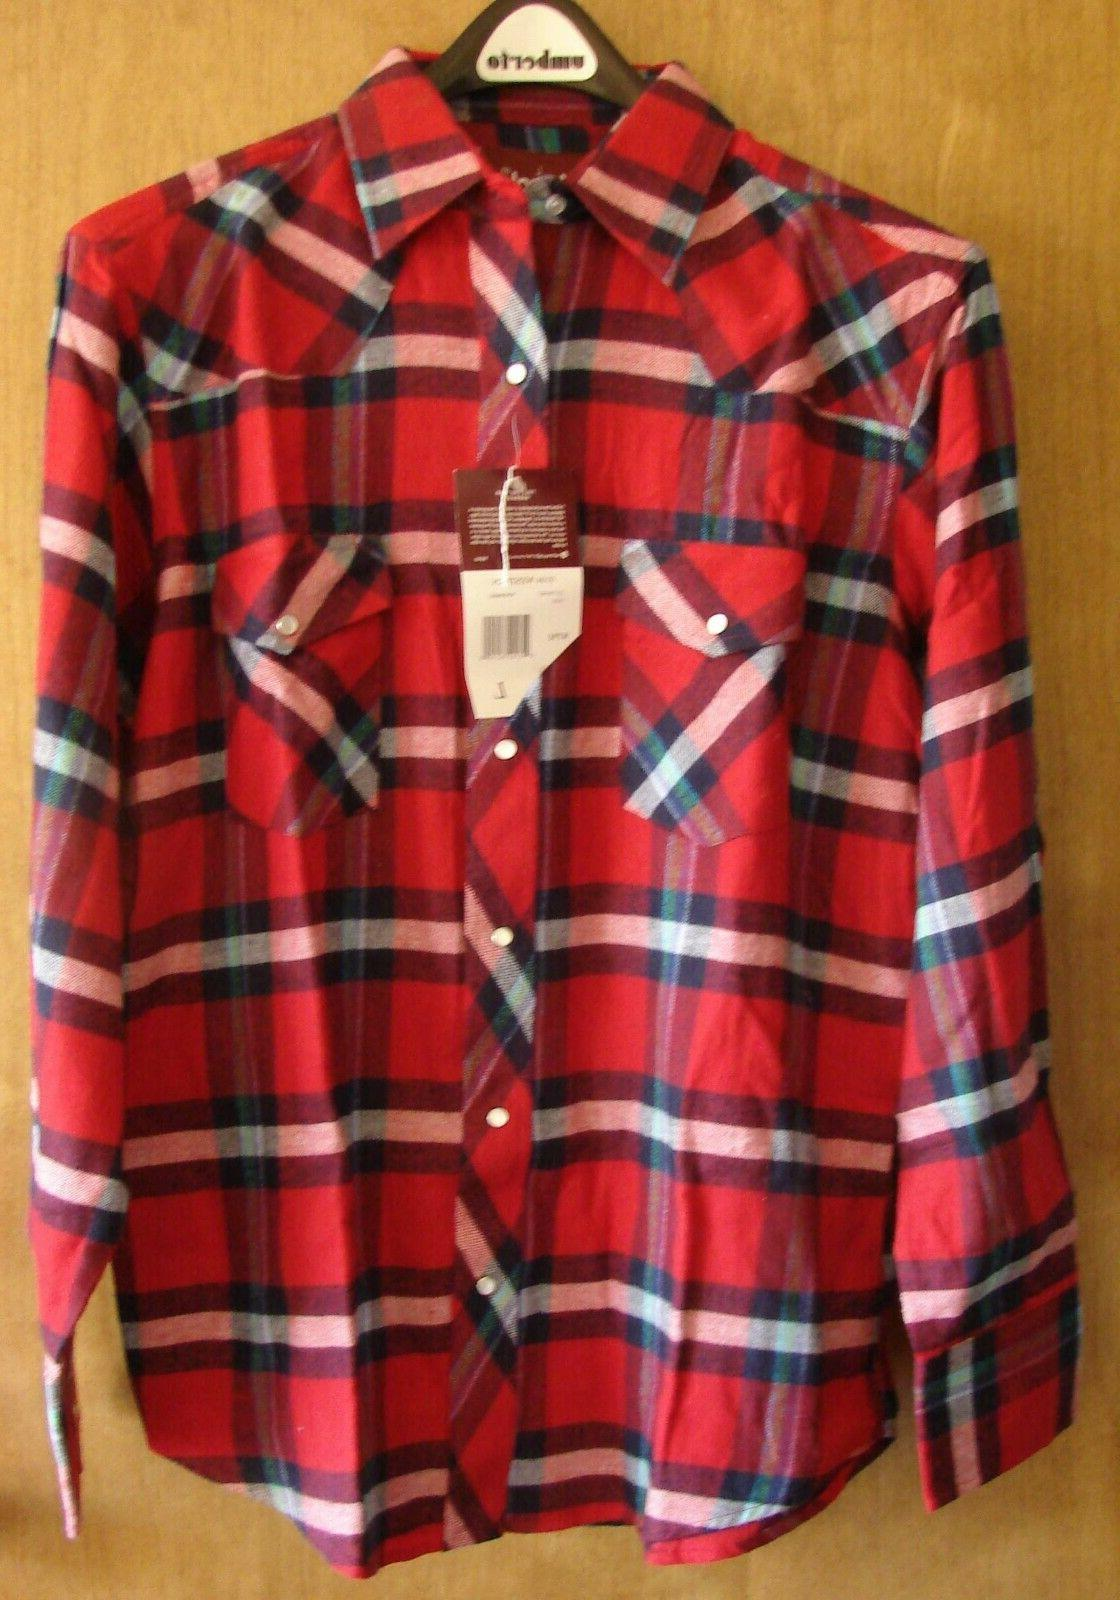 MEN'S SHIRTS RED BLUE PEARL SNAPS